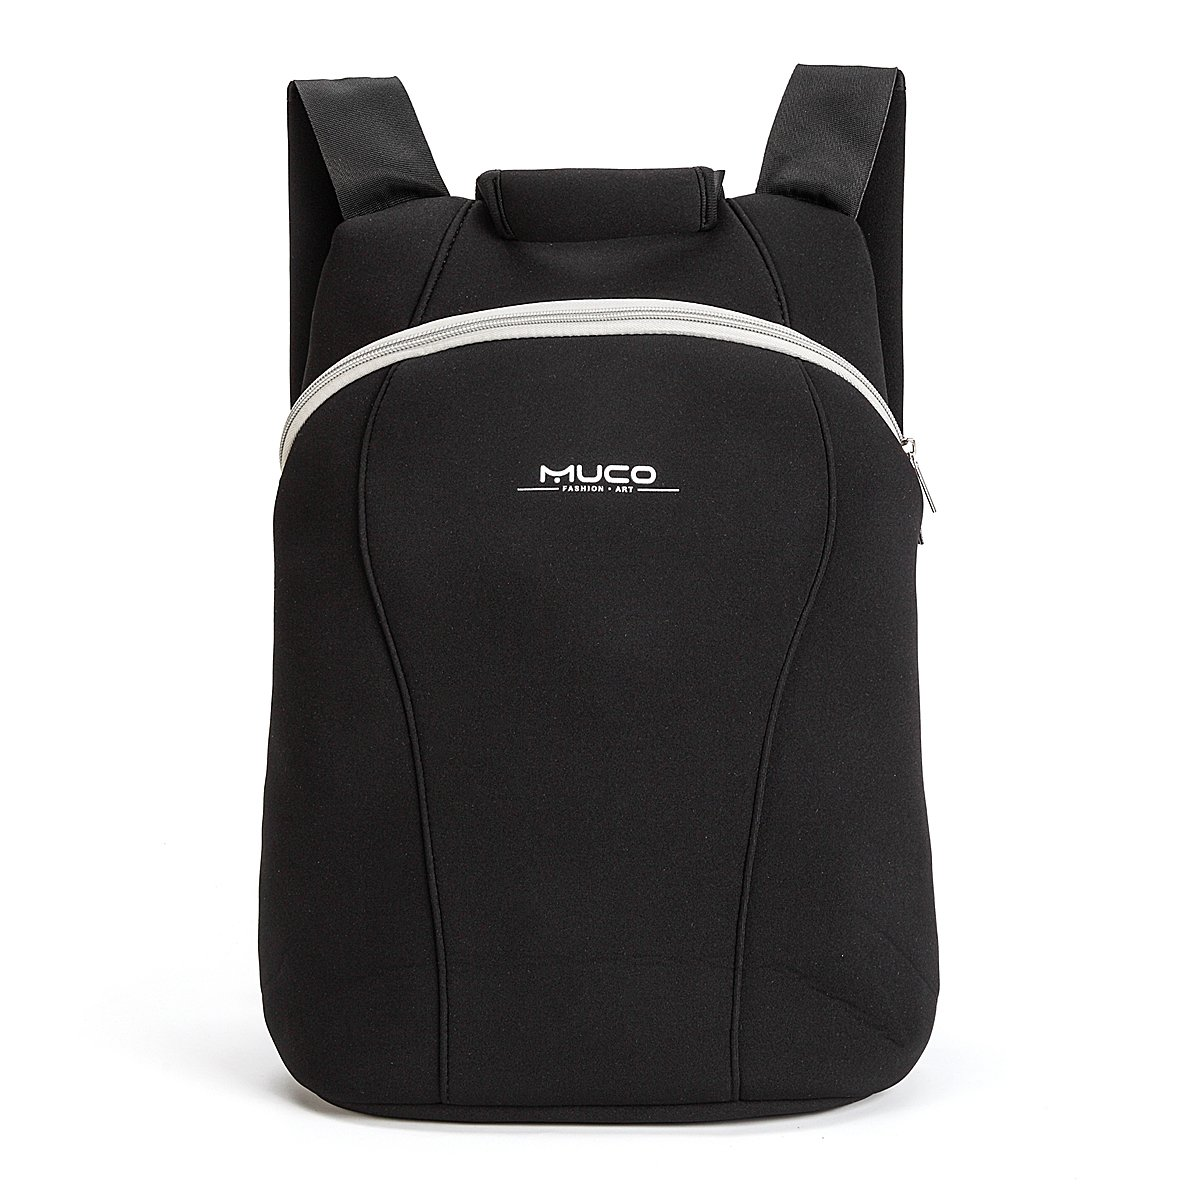 MUCO Backpack,Waterproof Soft Shockproof Simple Student Neoprene Backpack